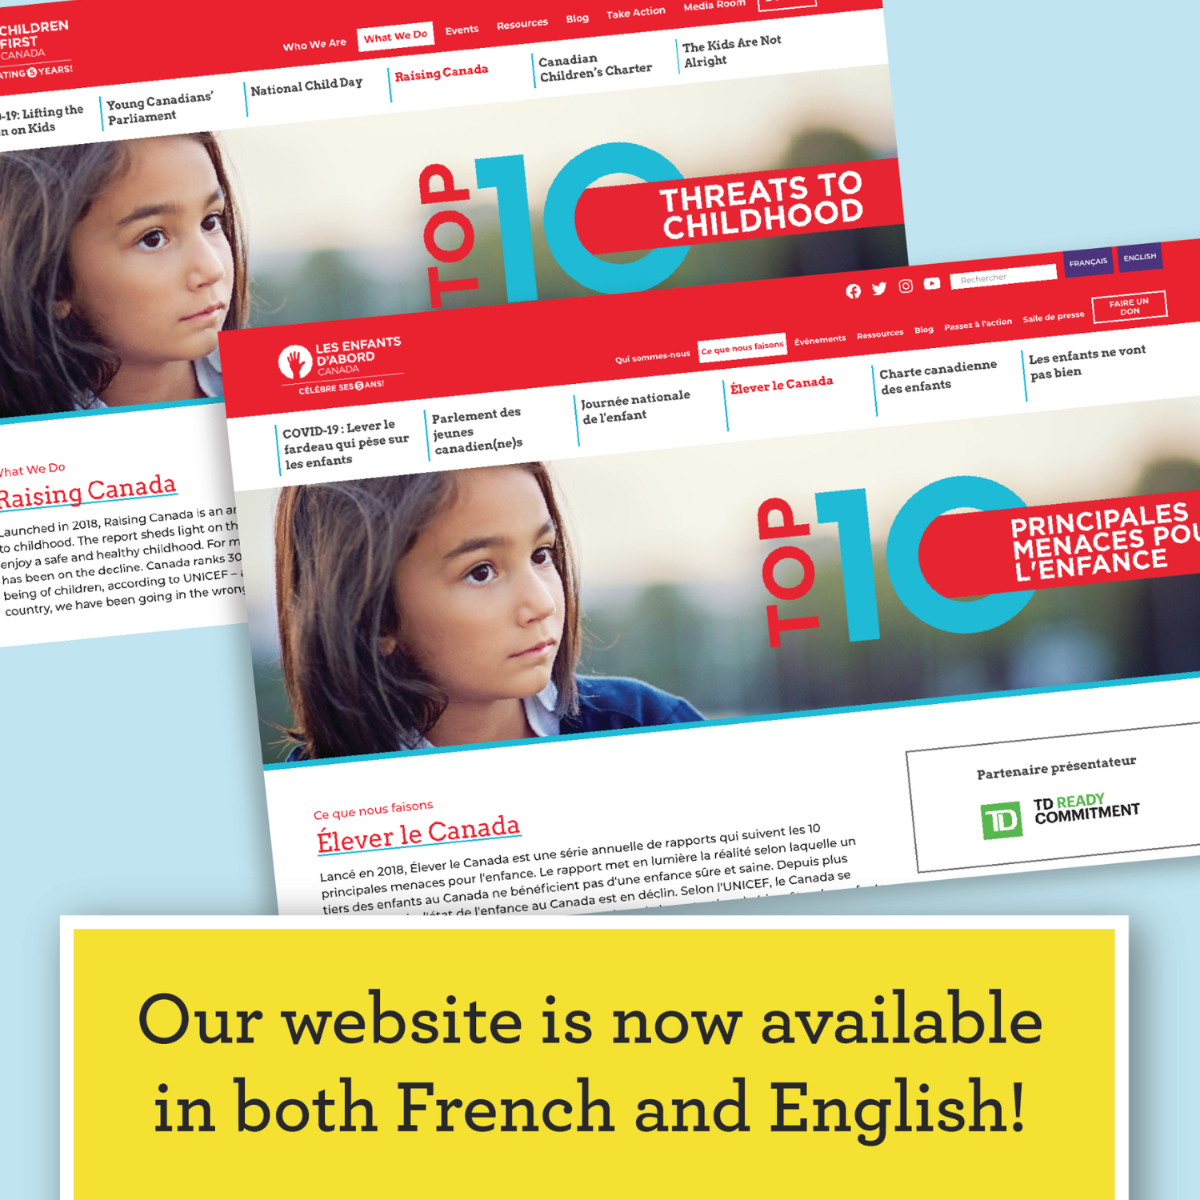 Our website is now available in both French and English!